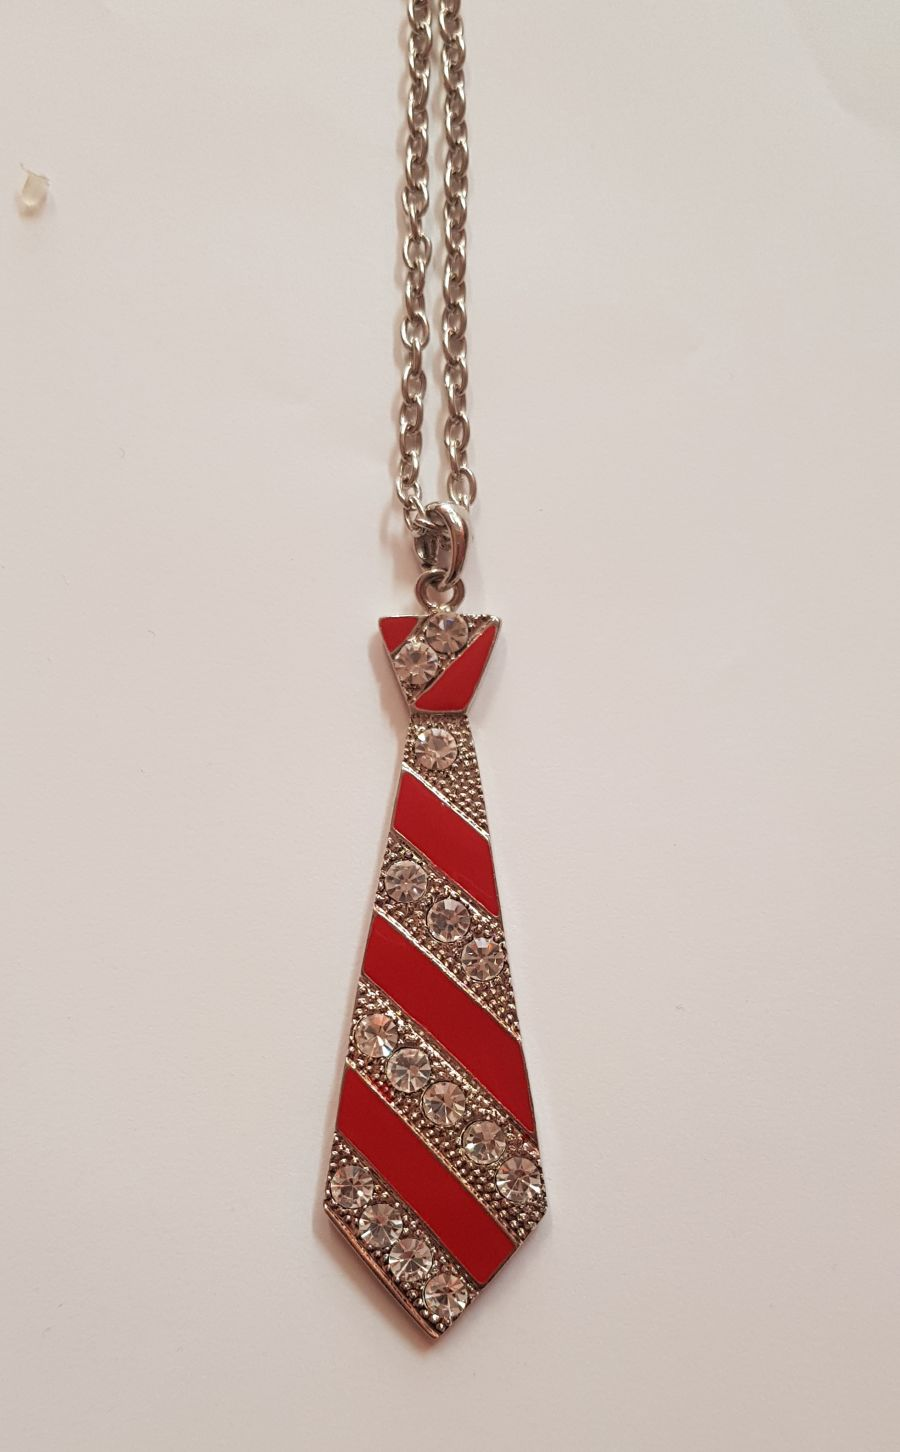 Red Tie Necklace